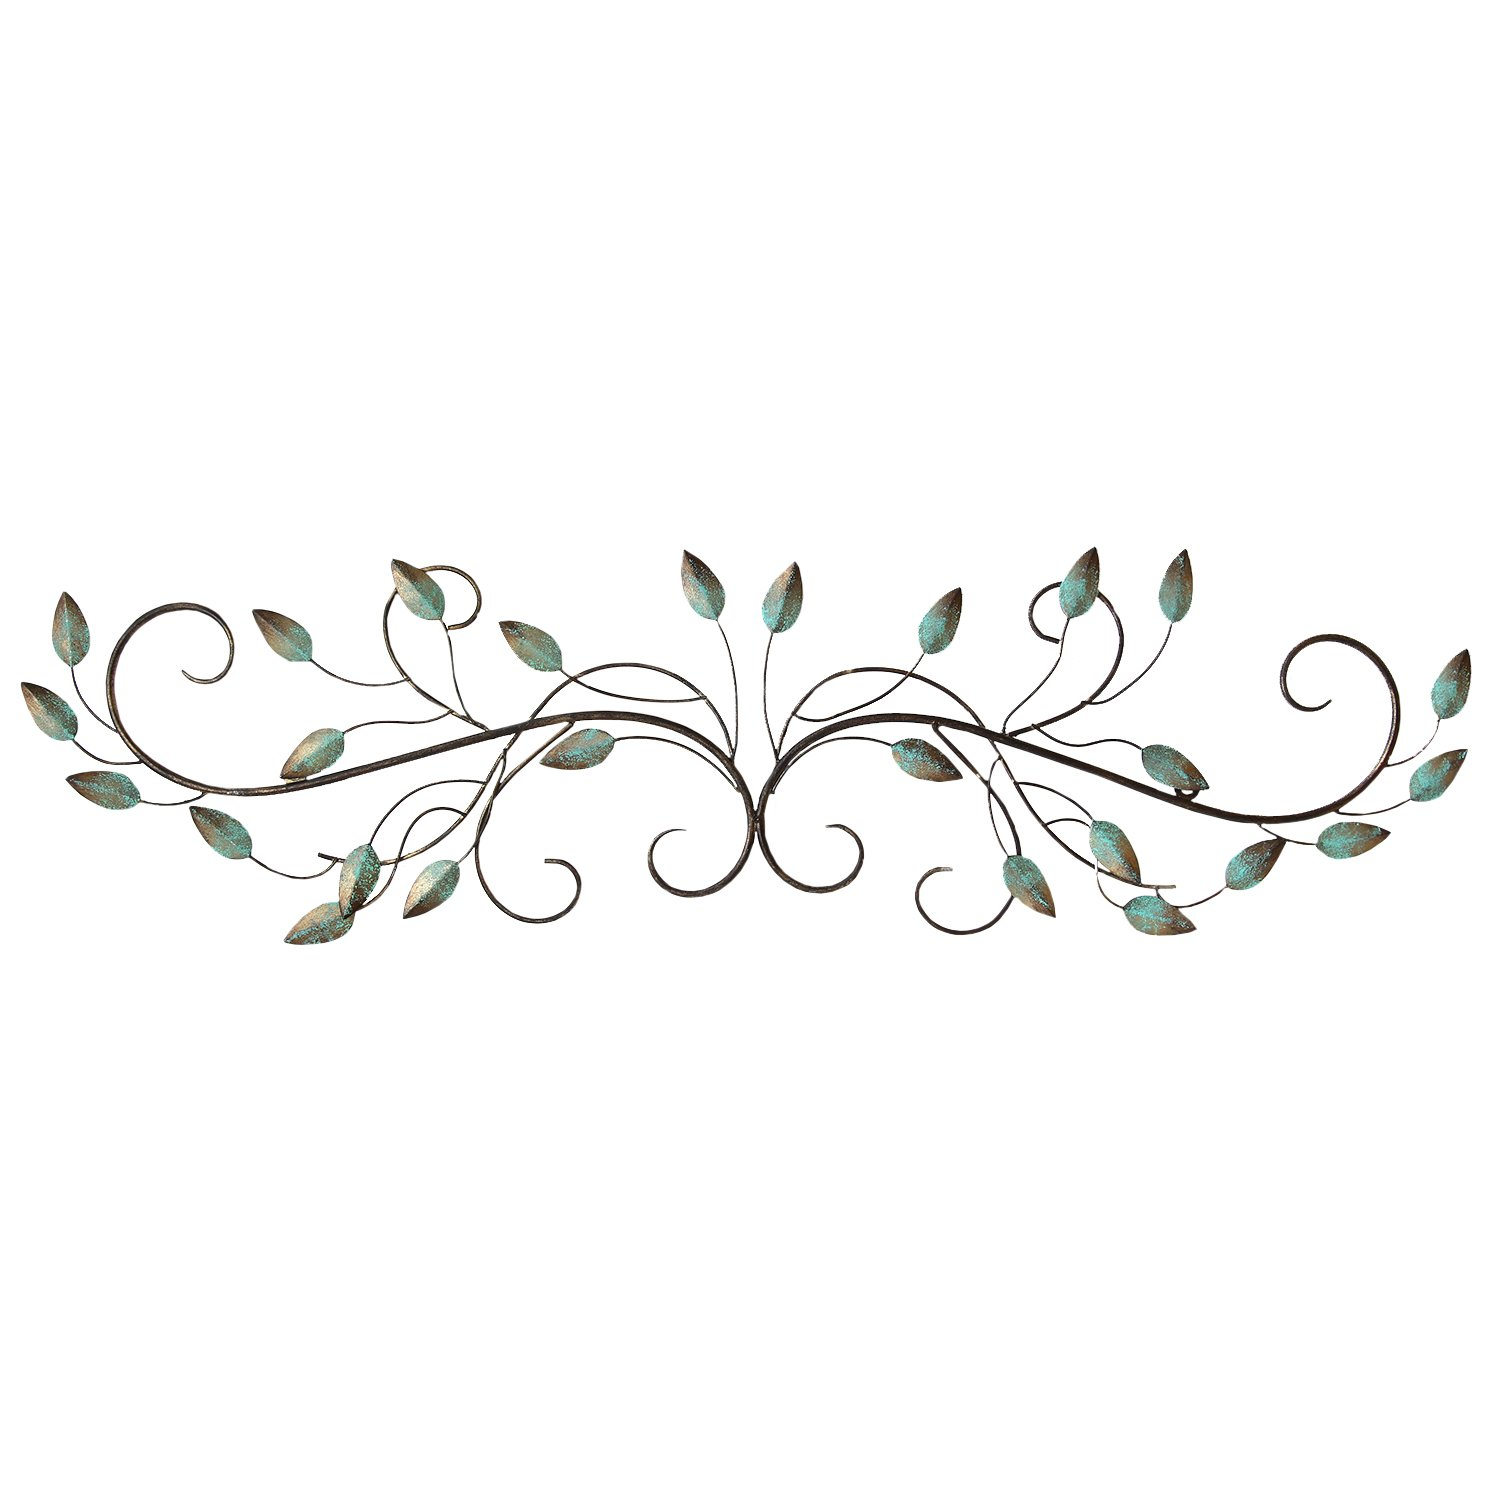 Stratton Home Decor SHD0065 Patina Scroll Leaf Wall Decor, 40.00 W X 1.00 D X 10.00 H,